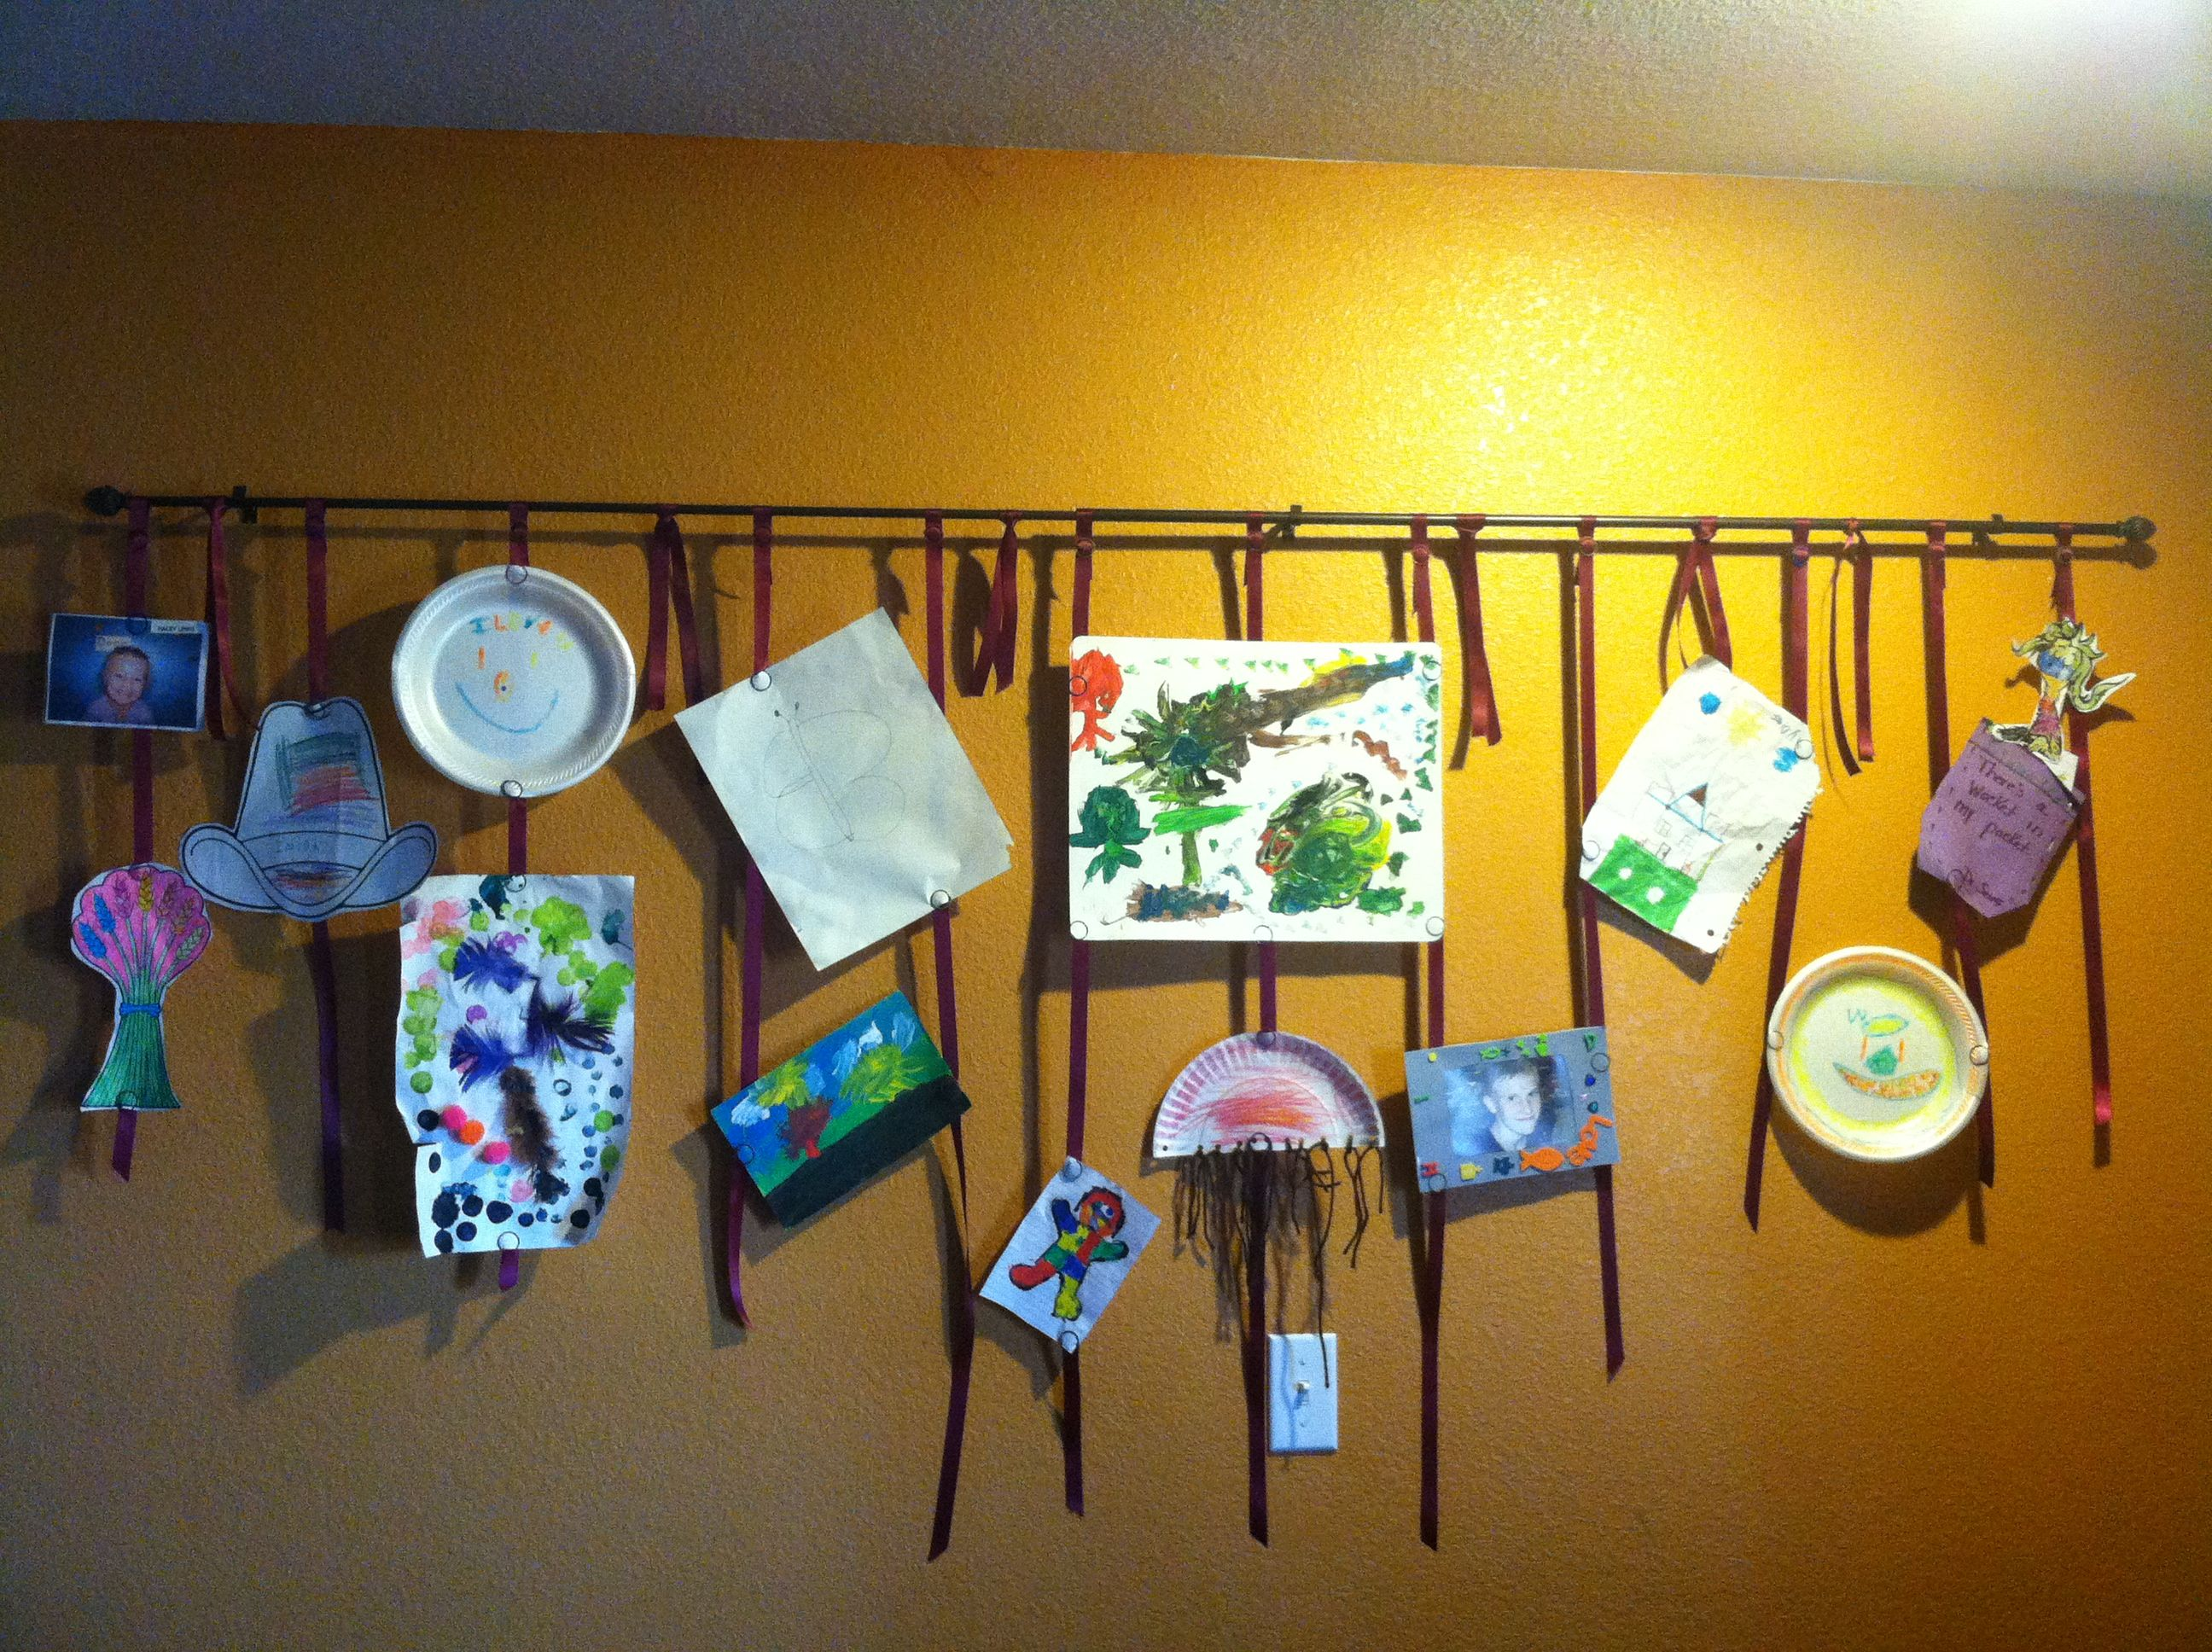 Childrens Artwork Display Fun Way To Display Childrens Art Work Projects Pinterest